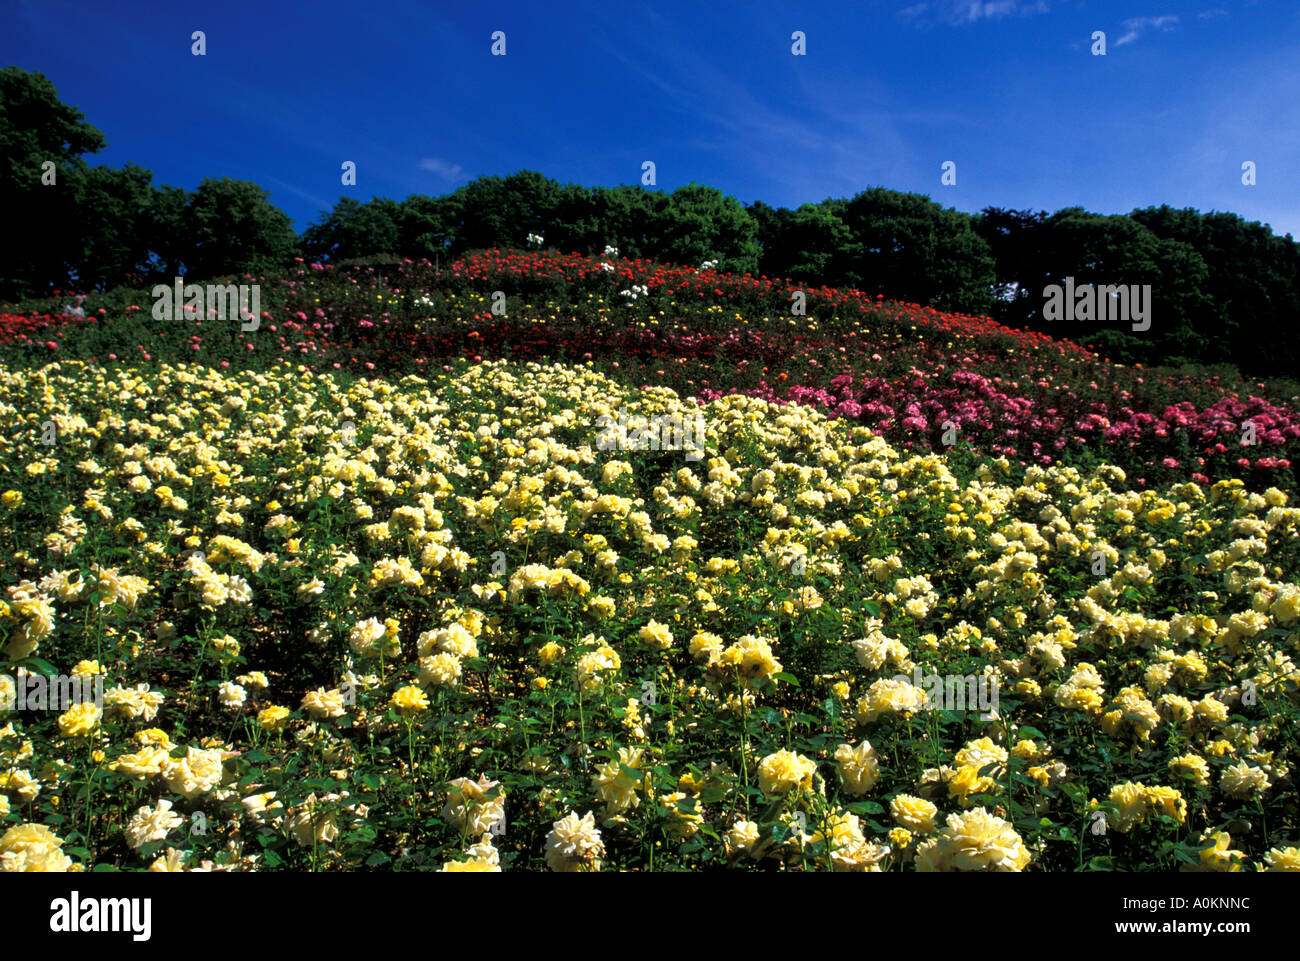 A Fresh Colourful Image Of A Yellow Pink And Red Rose Garden With